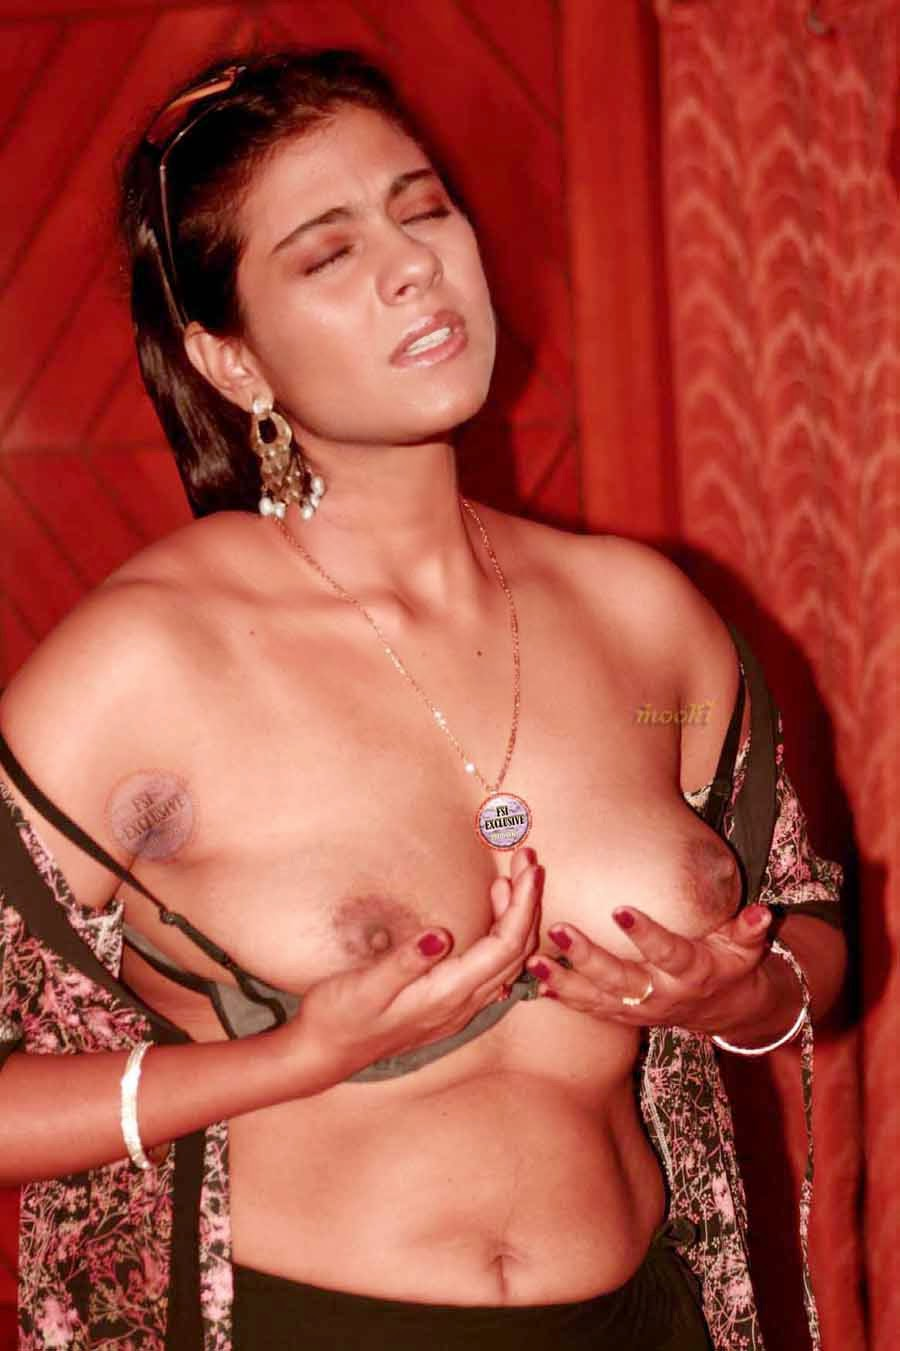 Hot Indian Actress Kajol Nude Pics Exposed-5950